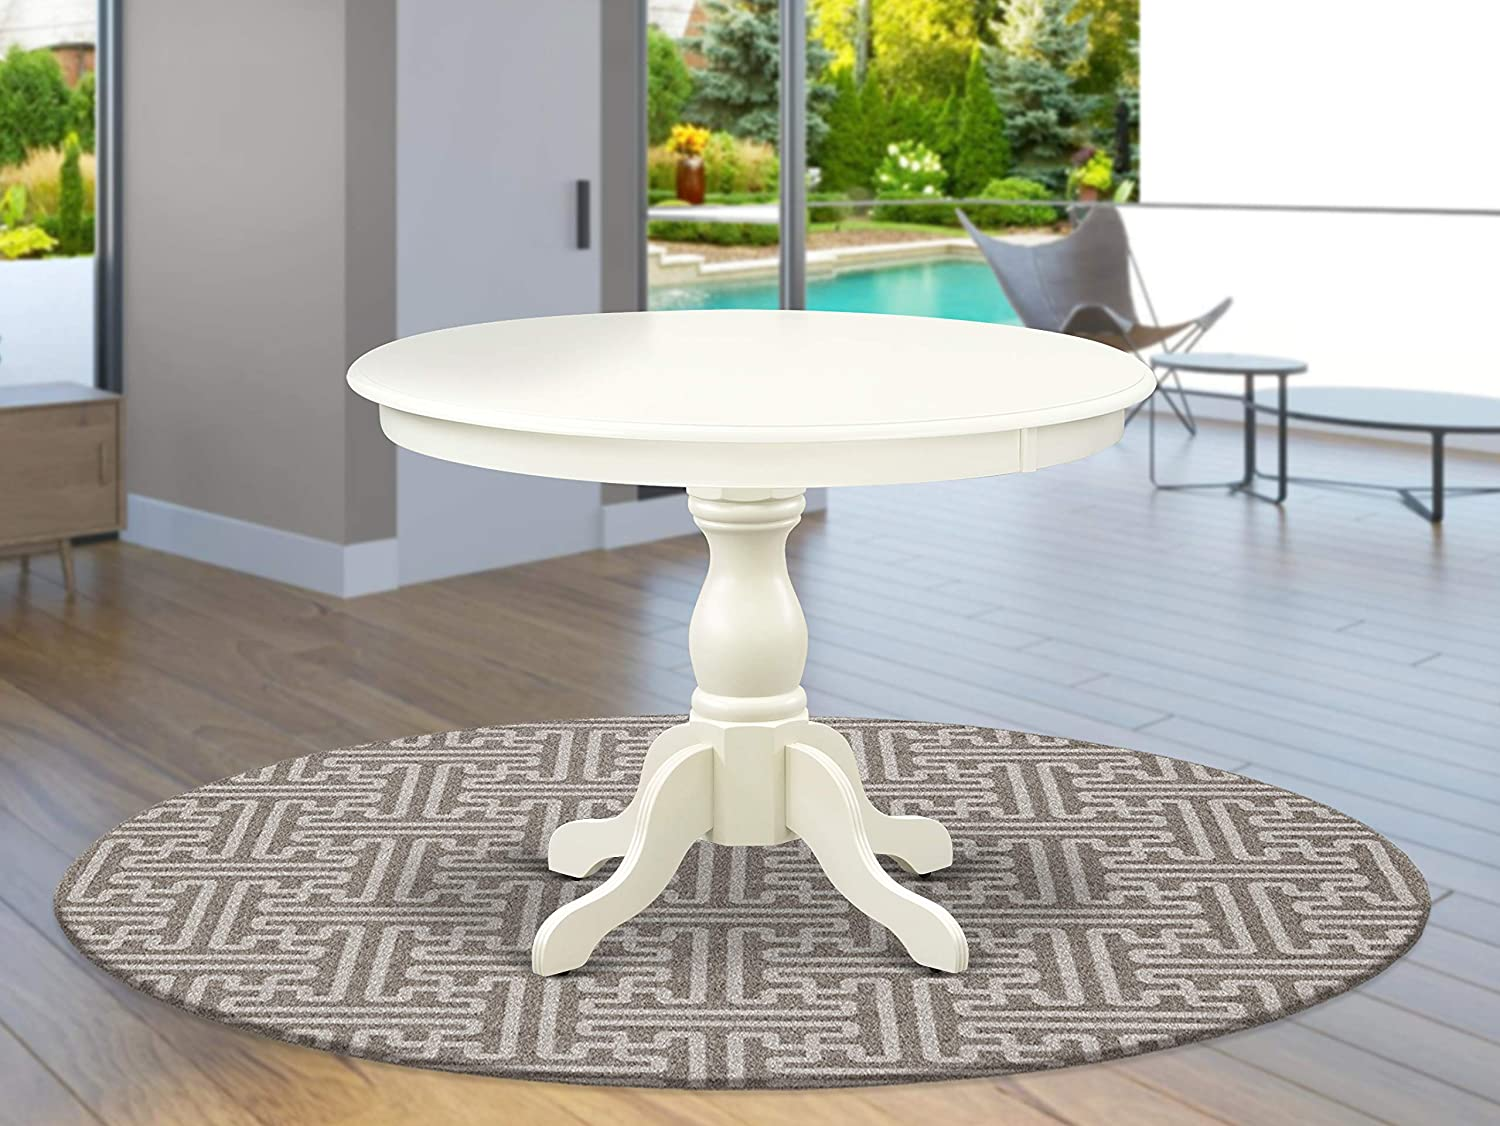 East West Furniture HBT-LWH-TP Table, Round